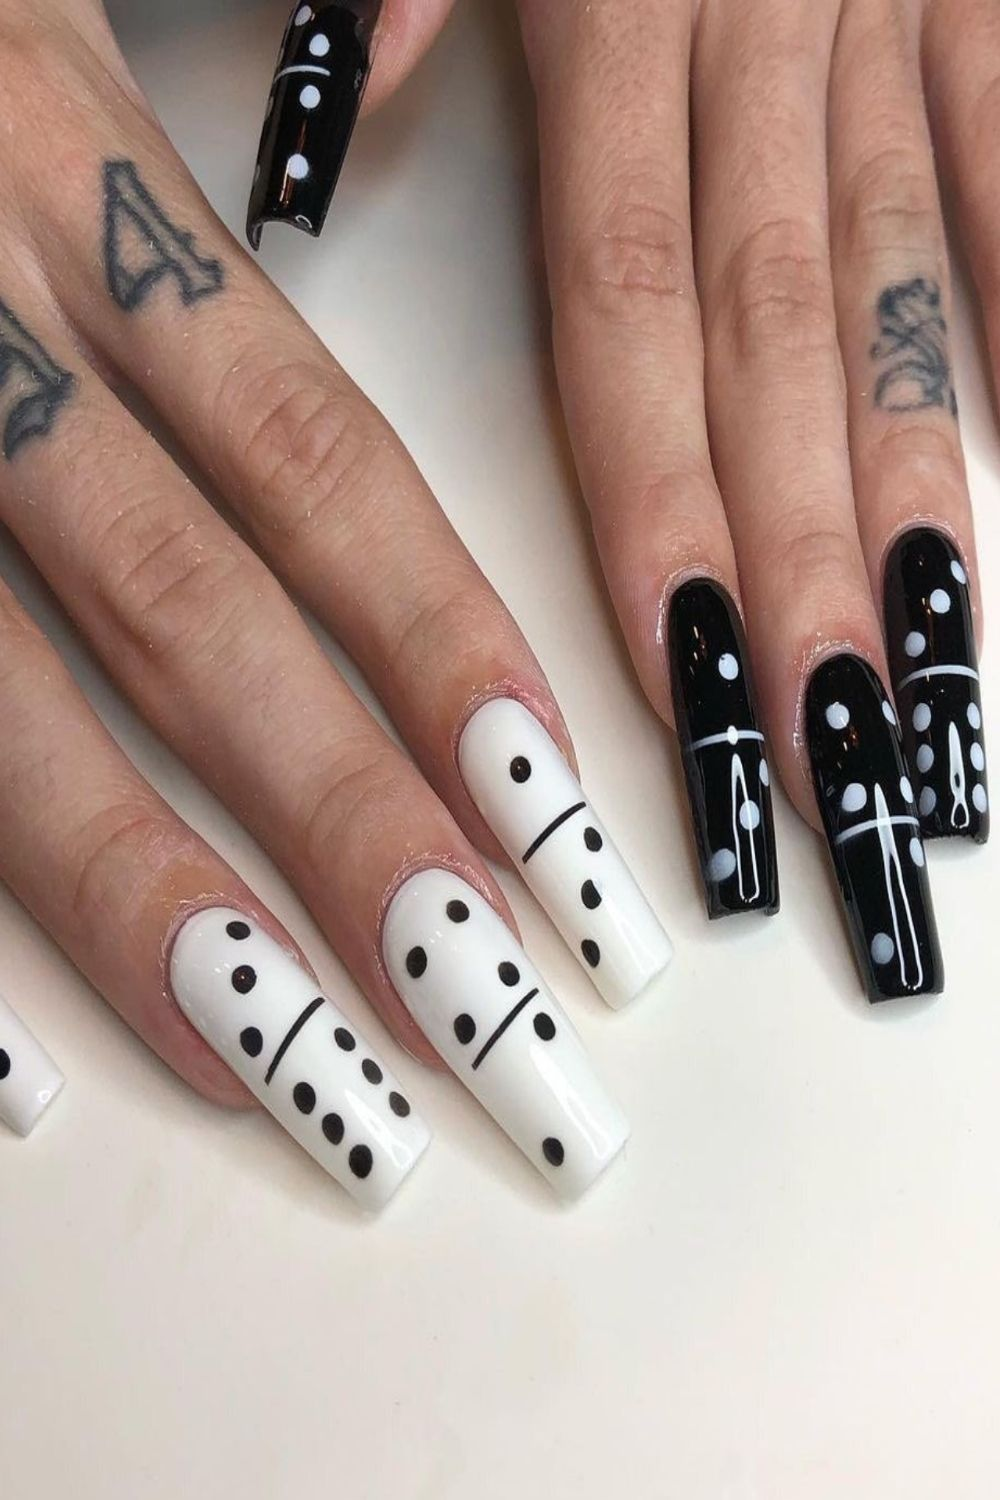 28 Best black and white nails to try 2021!